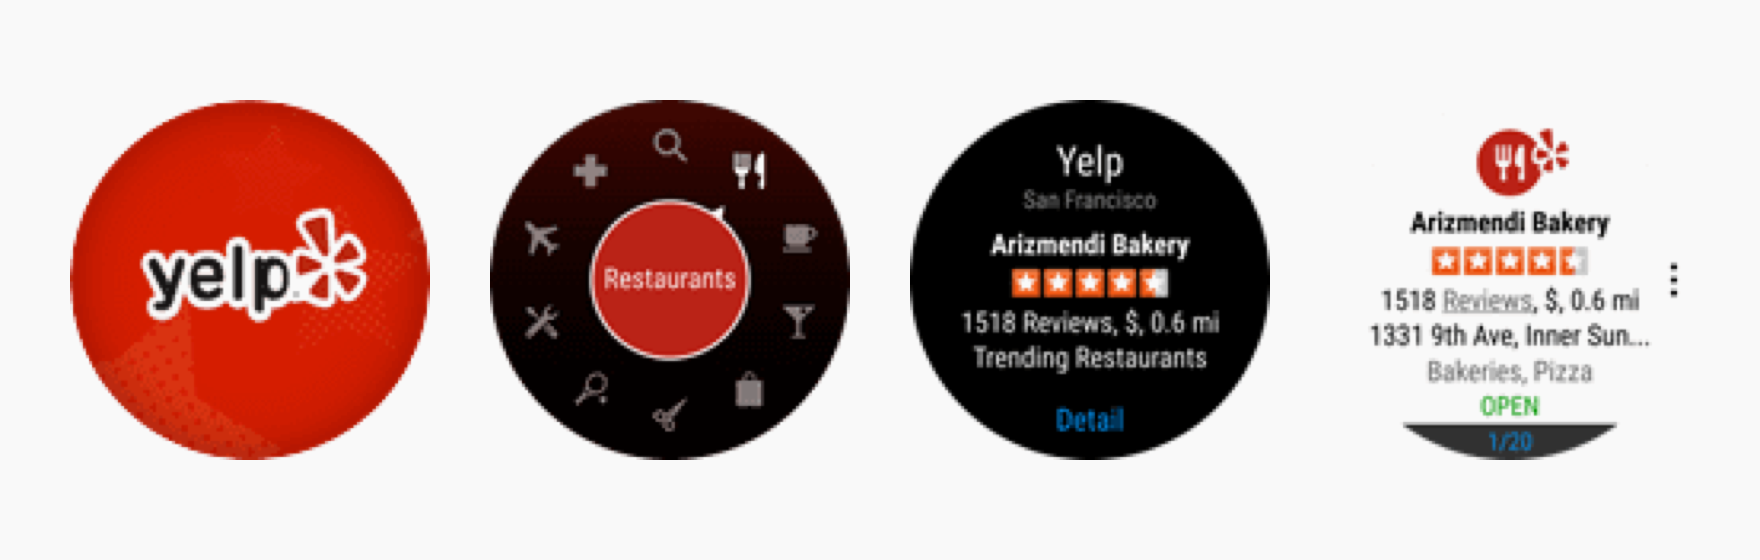 Yelp helps people find the best local businesses. It suggests nearby stores or restaurants based on the user's current location. Users can interact with the app in diverse ways using the bezel, tapping, swiping, and speaking (when they double-tap the screen).